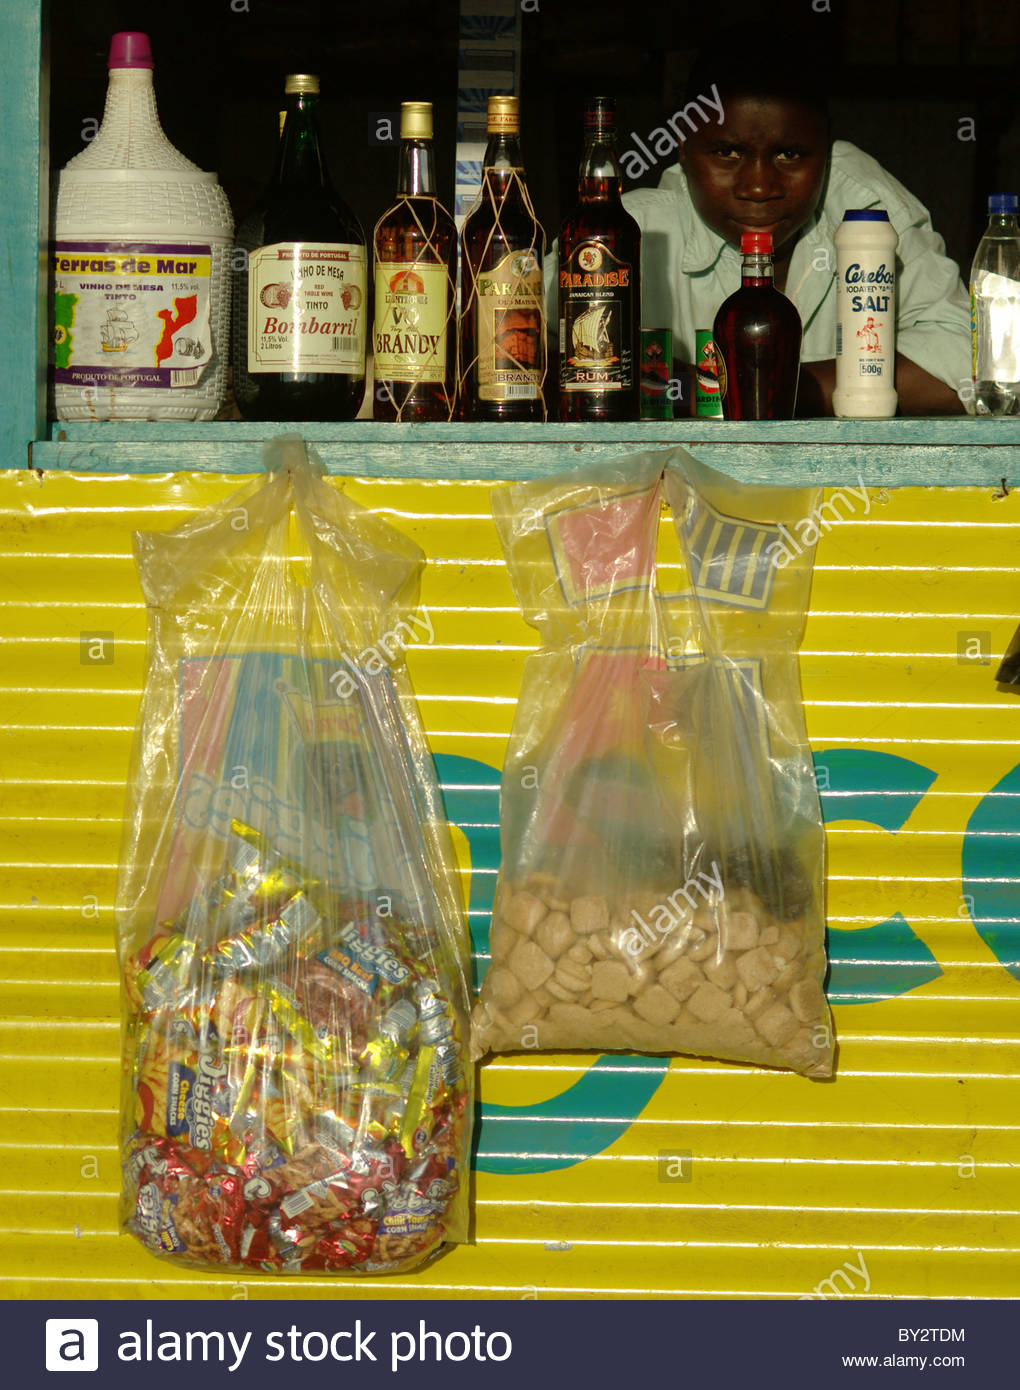 Muslim Boy Selling Alcohol And Cell Phone Recharge Shop - Mozambique Southern Africa - Stock Image